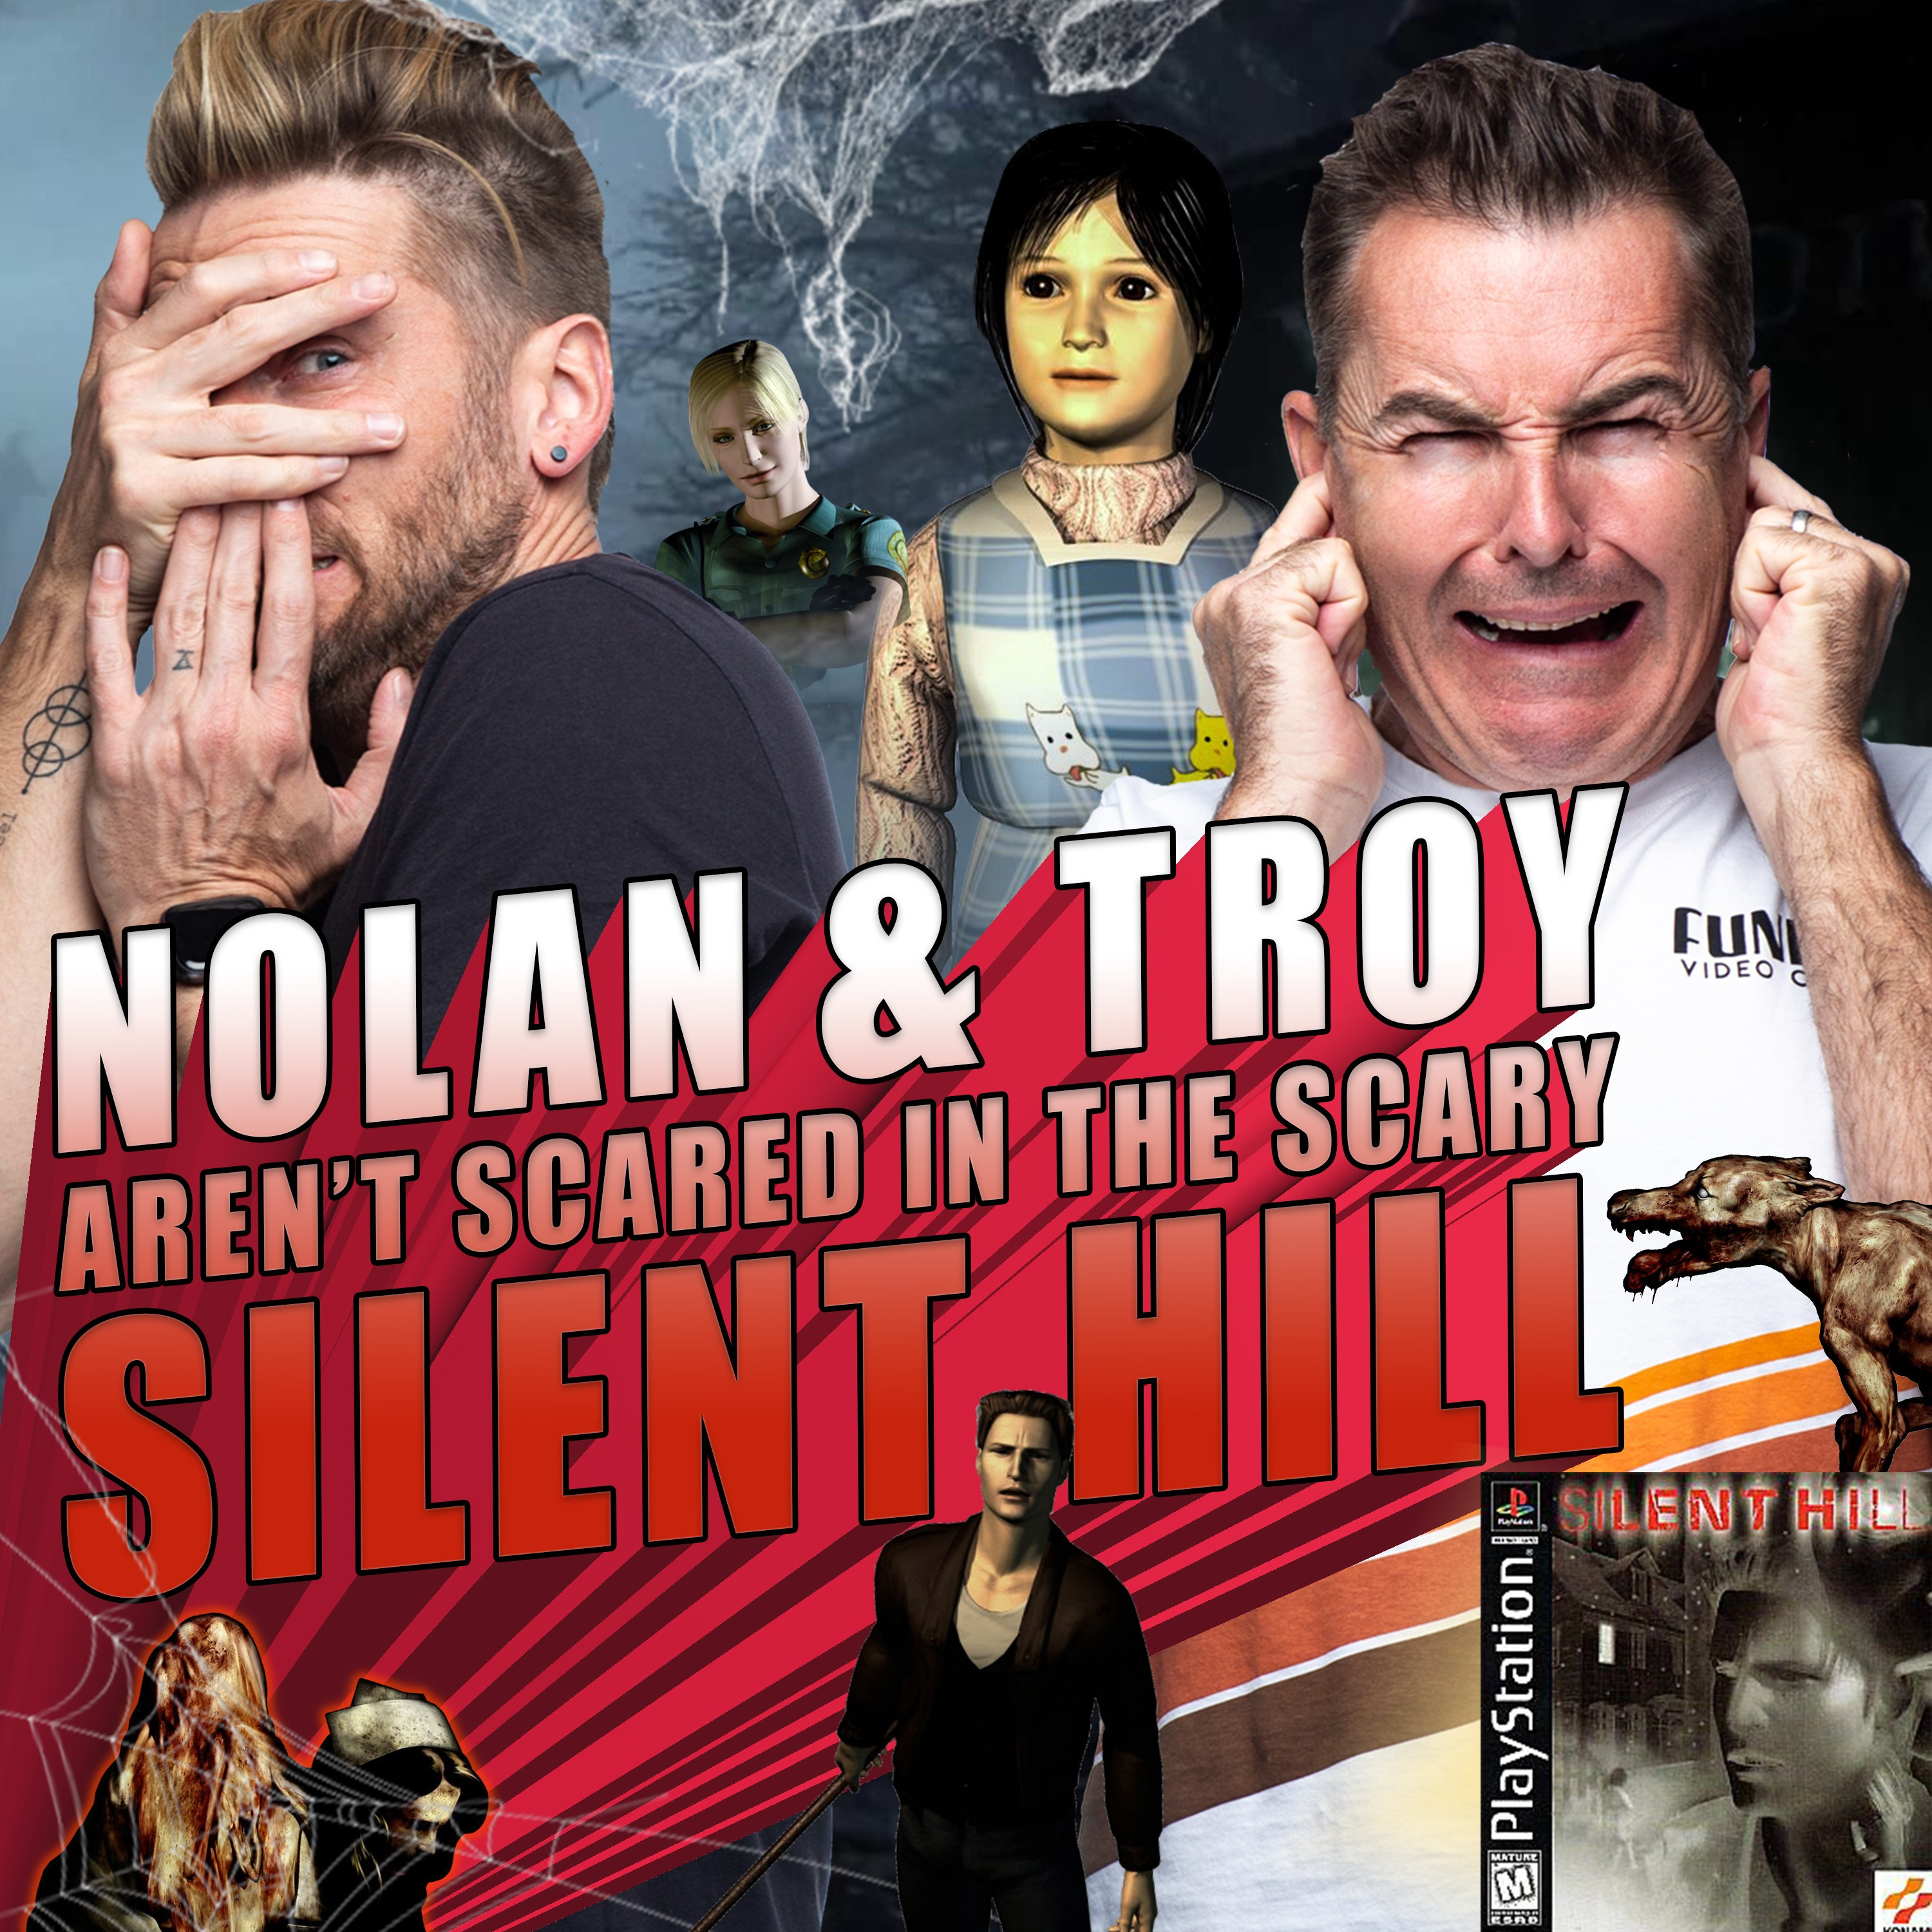 Nolan North and Troy Baker aren't Scared in the Scary Silent HiIl